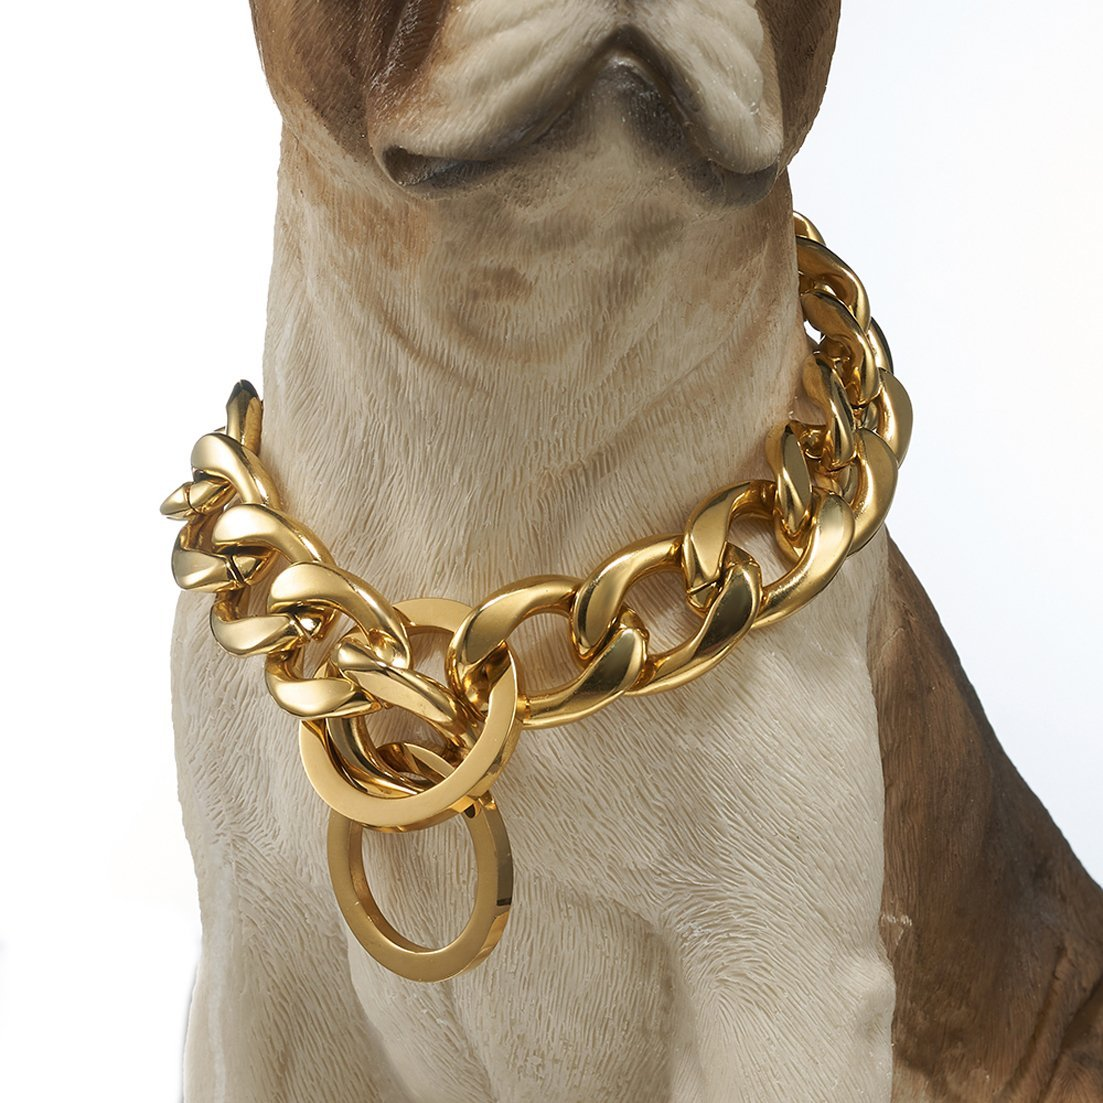 GZMZC 13/15/19mm Strong Gold Plated Stainless Steel NK Link Chain Dog Pet Collar Choker Necklace 12-36inch(20inches,19mm)